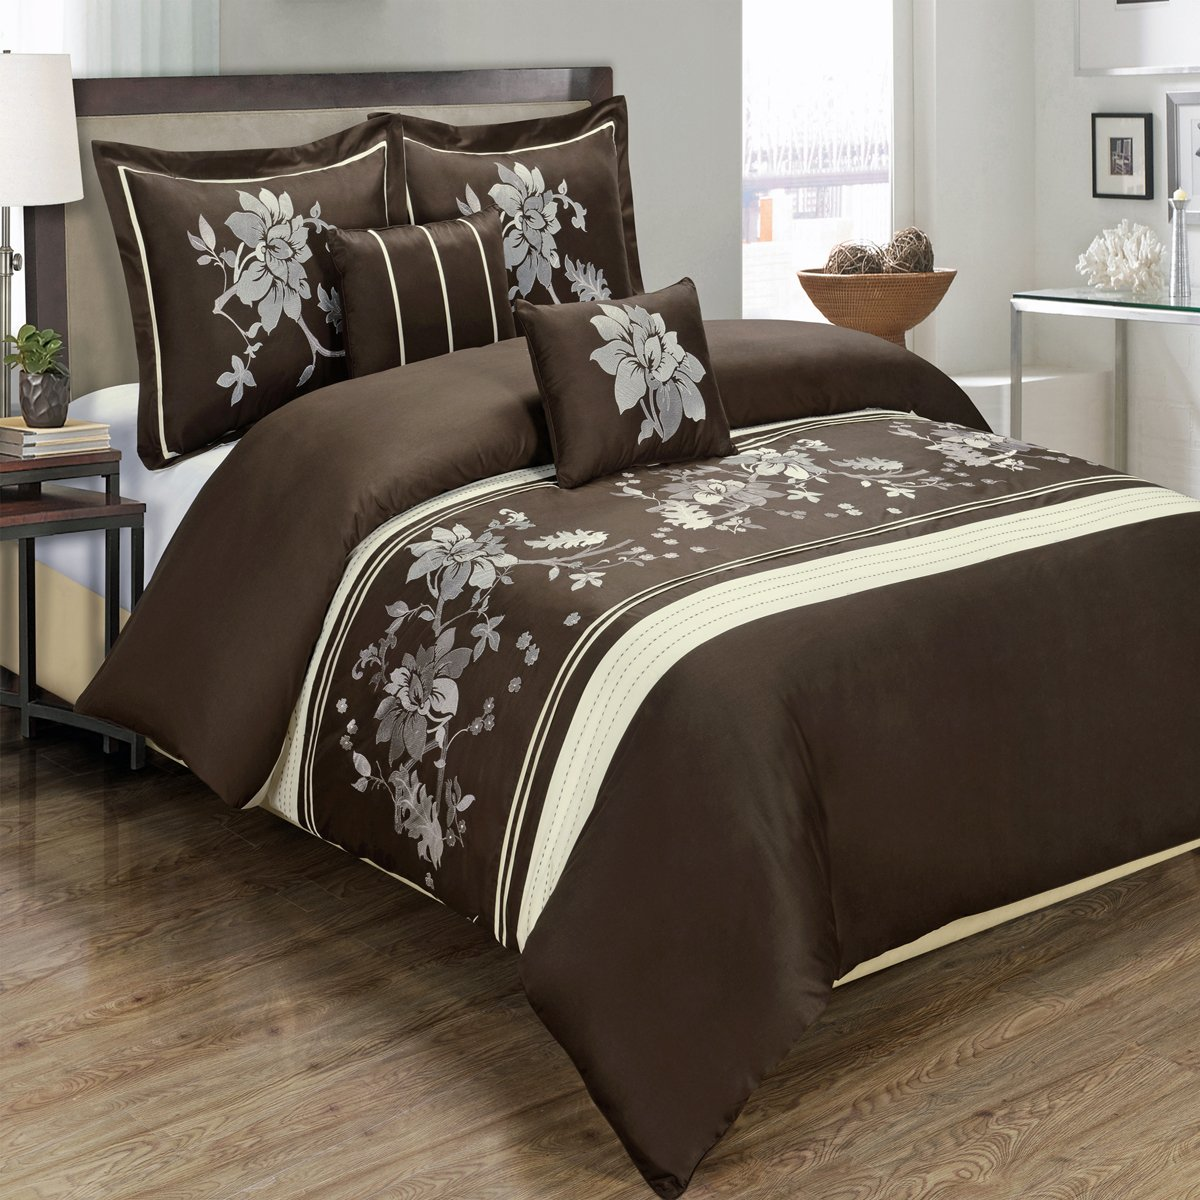 5PC Myra King/Cal-King Embroidered Duvet Cover Set, Chocolate, by Royal Hotel